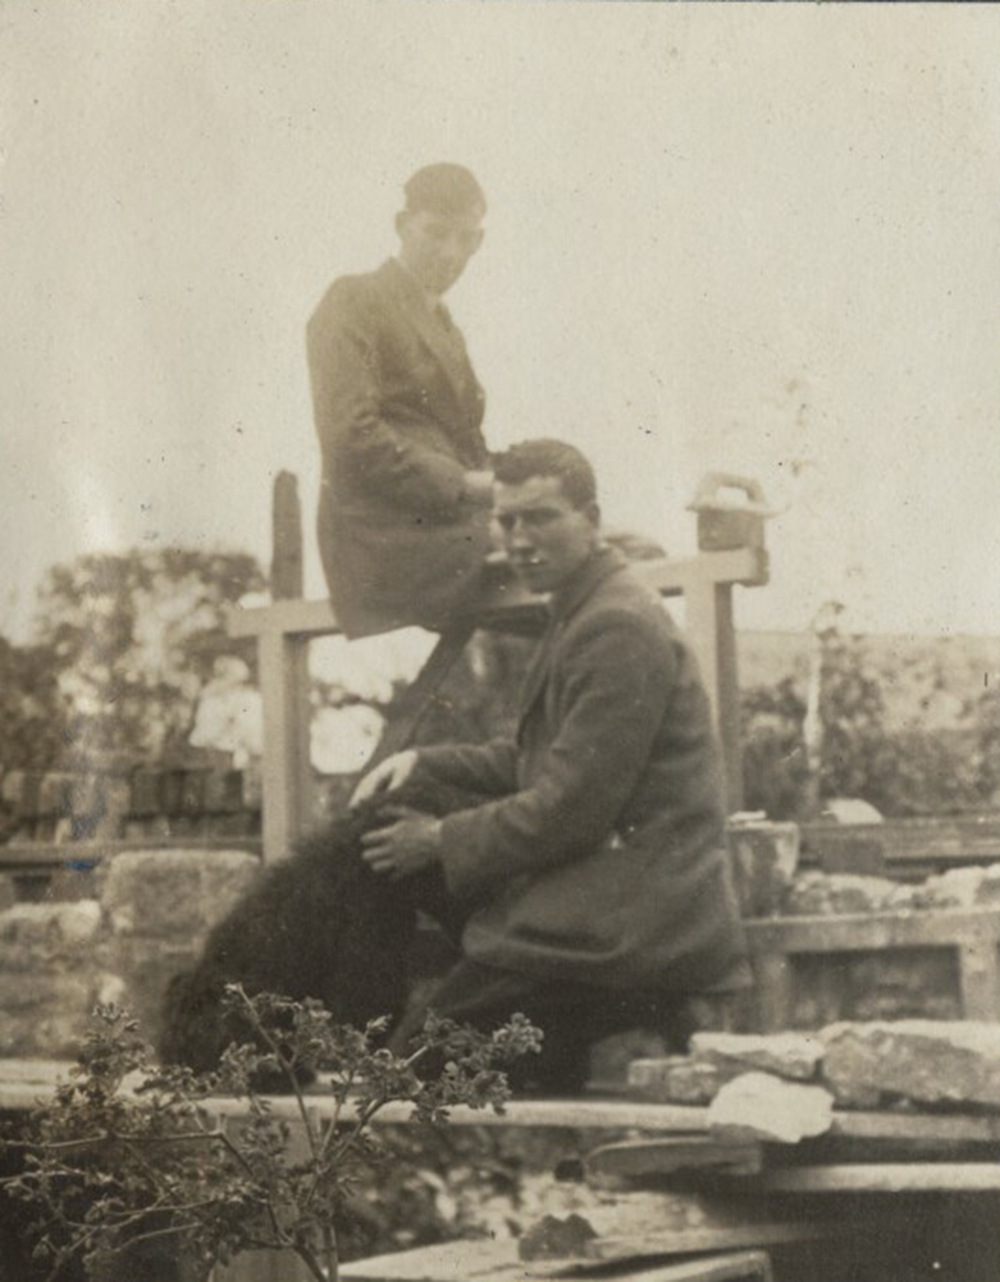 Siegfried Sassoon and Robert Graves, by Lady Ottoline Morrell, 1920. © National Portrait Gallery, London.